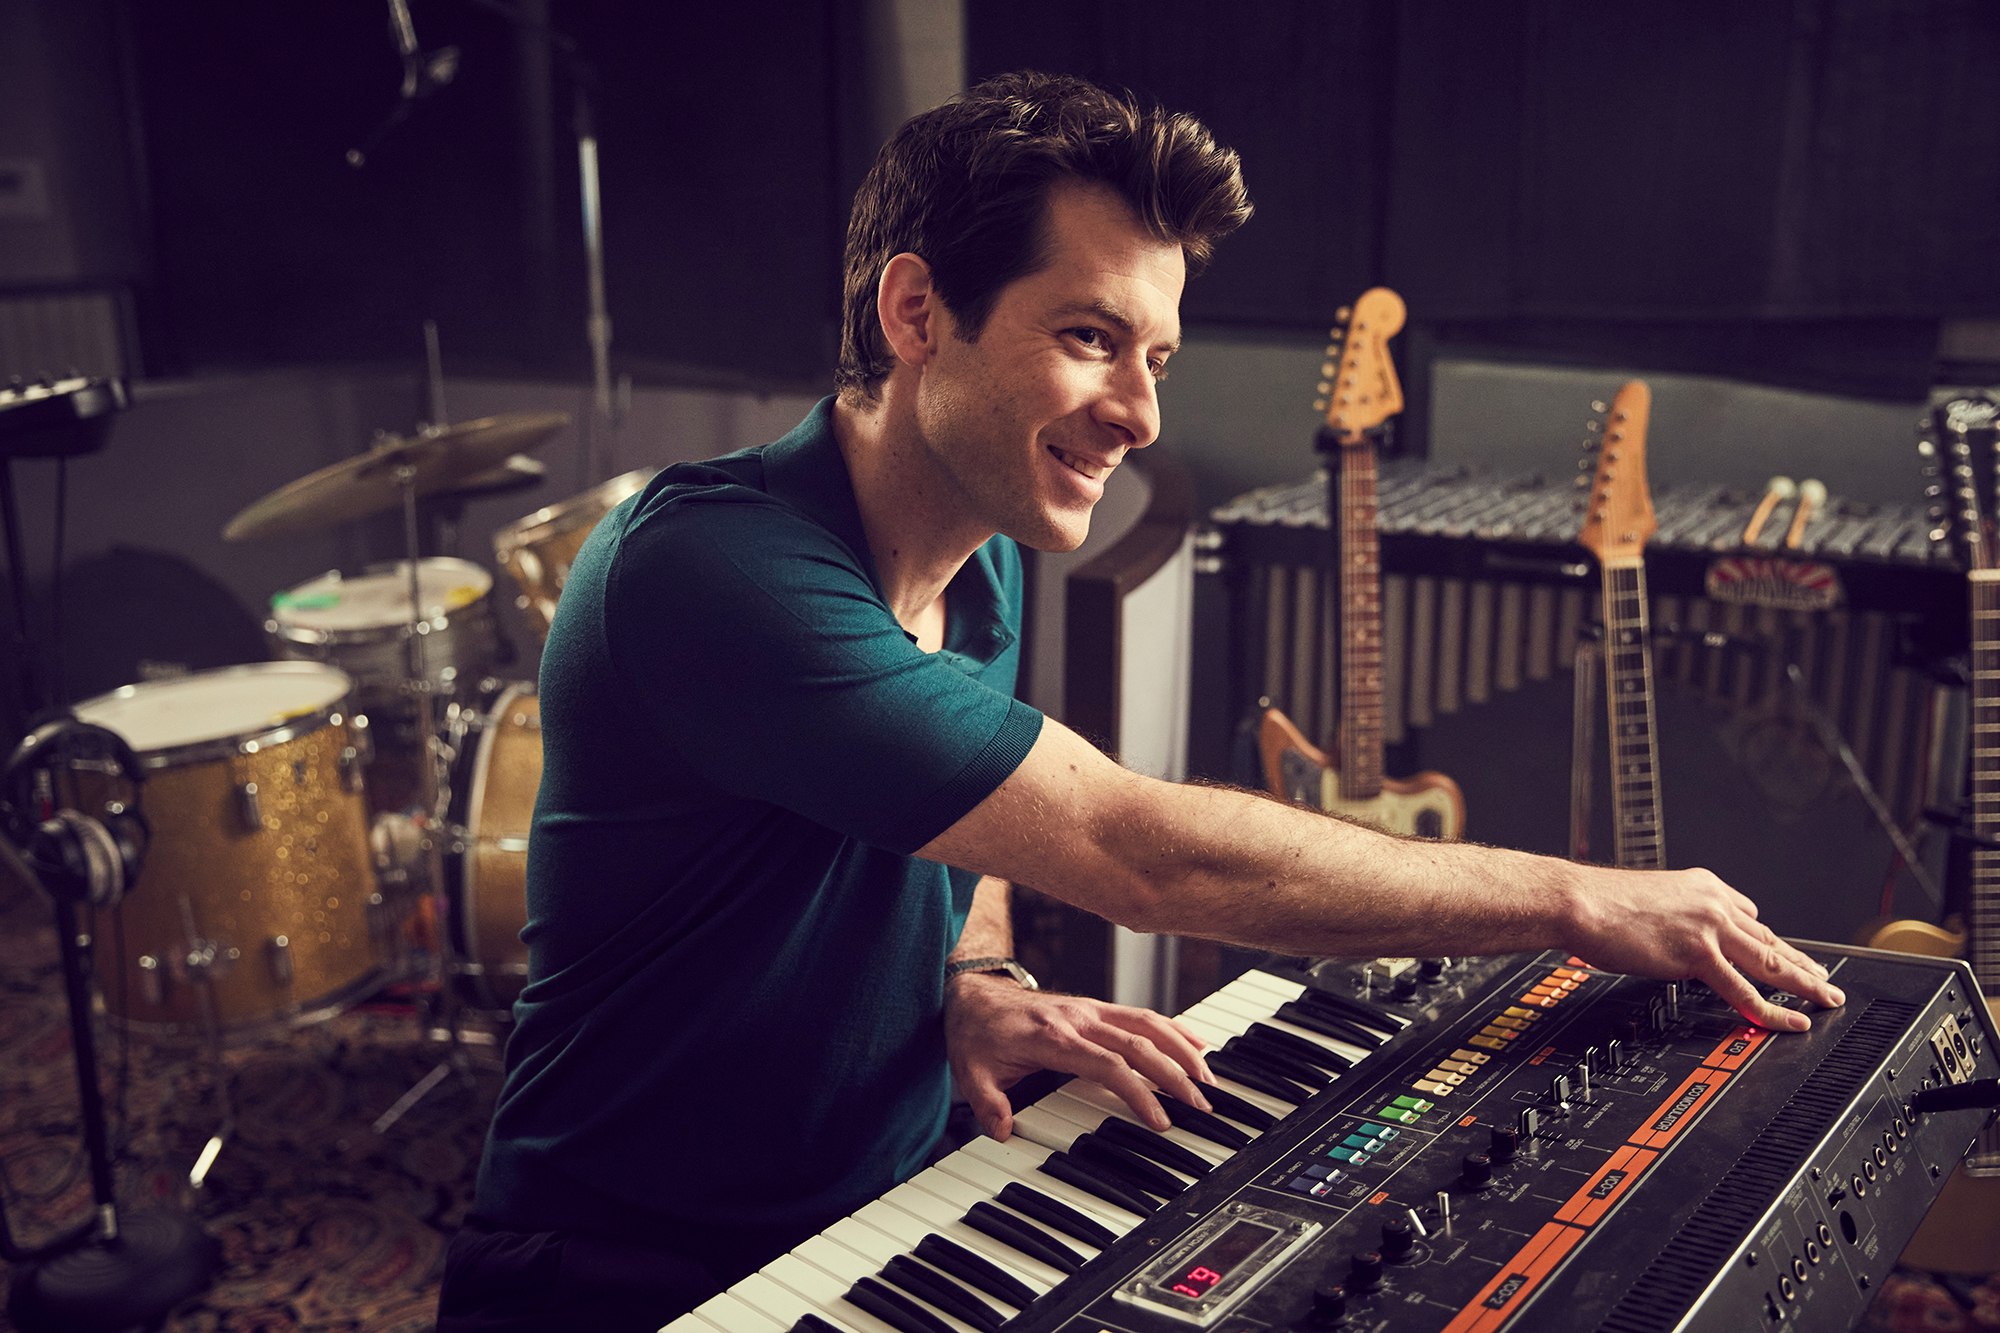 Grammy winning producer Mark Ronson hosts a new show on Apple TV+ titled 'Watch The Sound.'